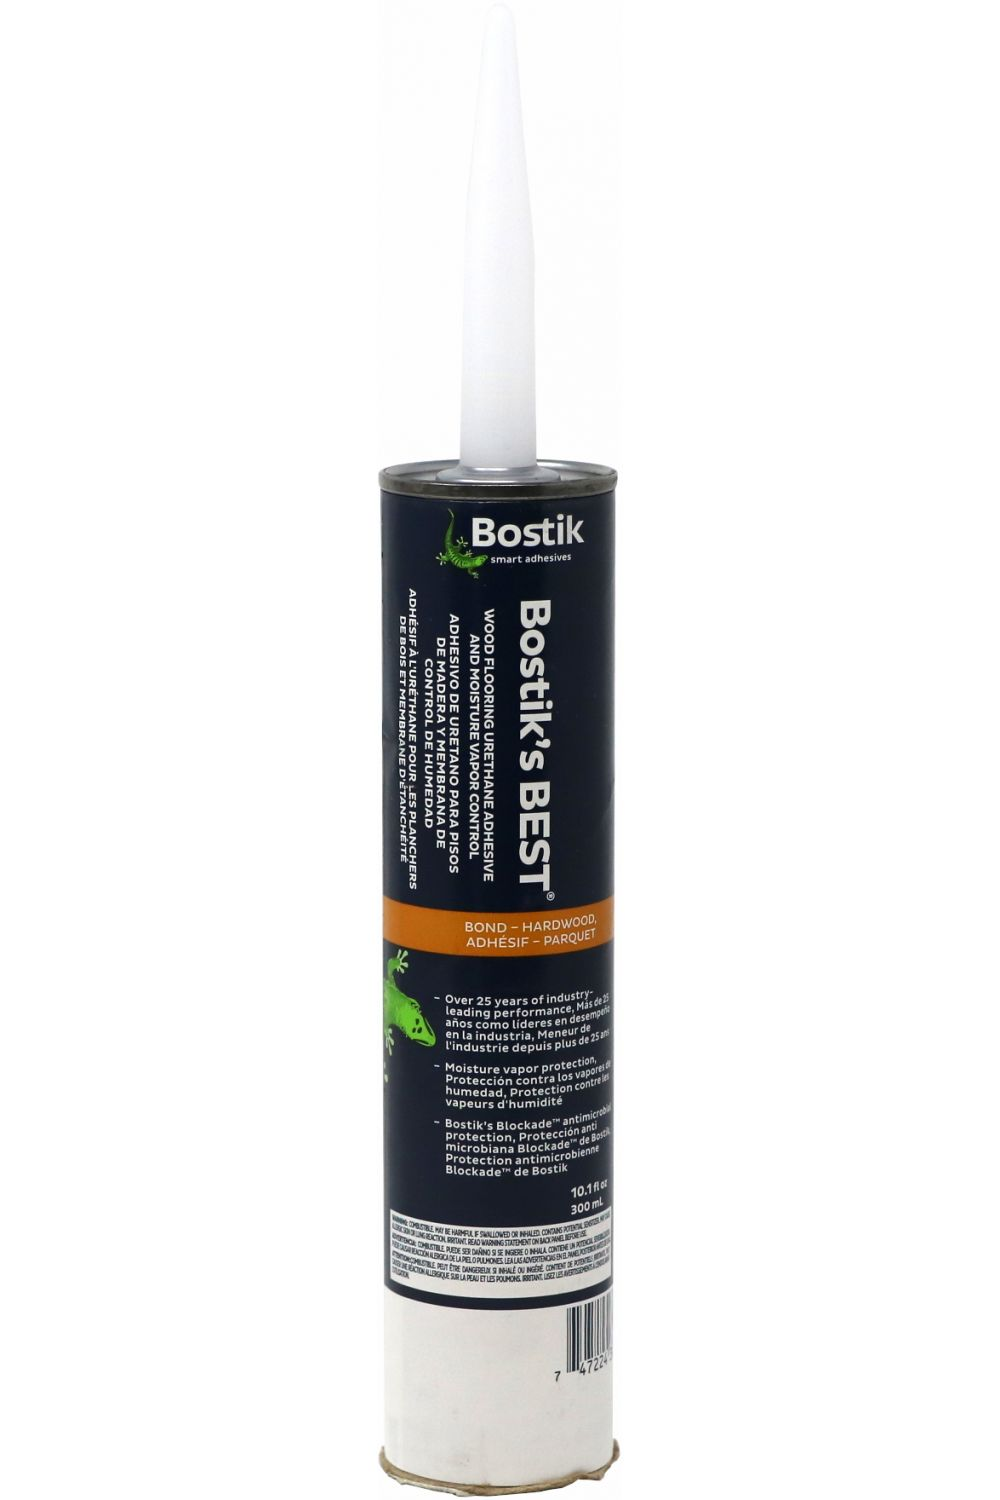 Bostik's Best Wood Flooring Urethane Adhesive 10.1 FL OZ Caulk Tube